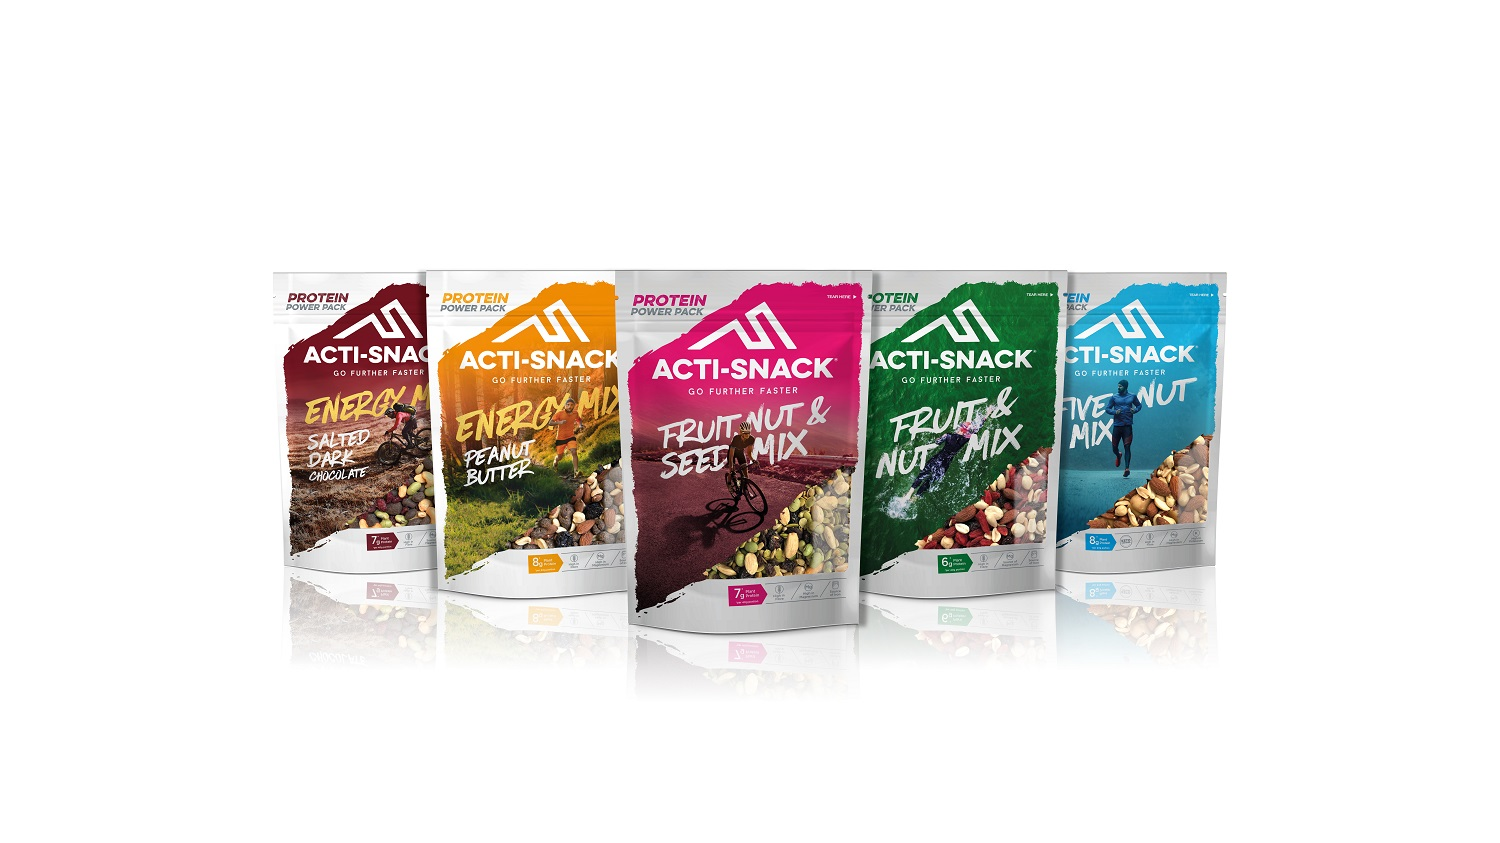 ACTI-SNACK launches the next generation of sports nutrition snacks